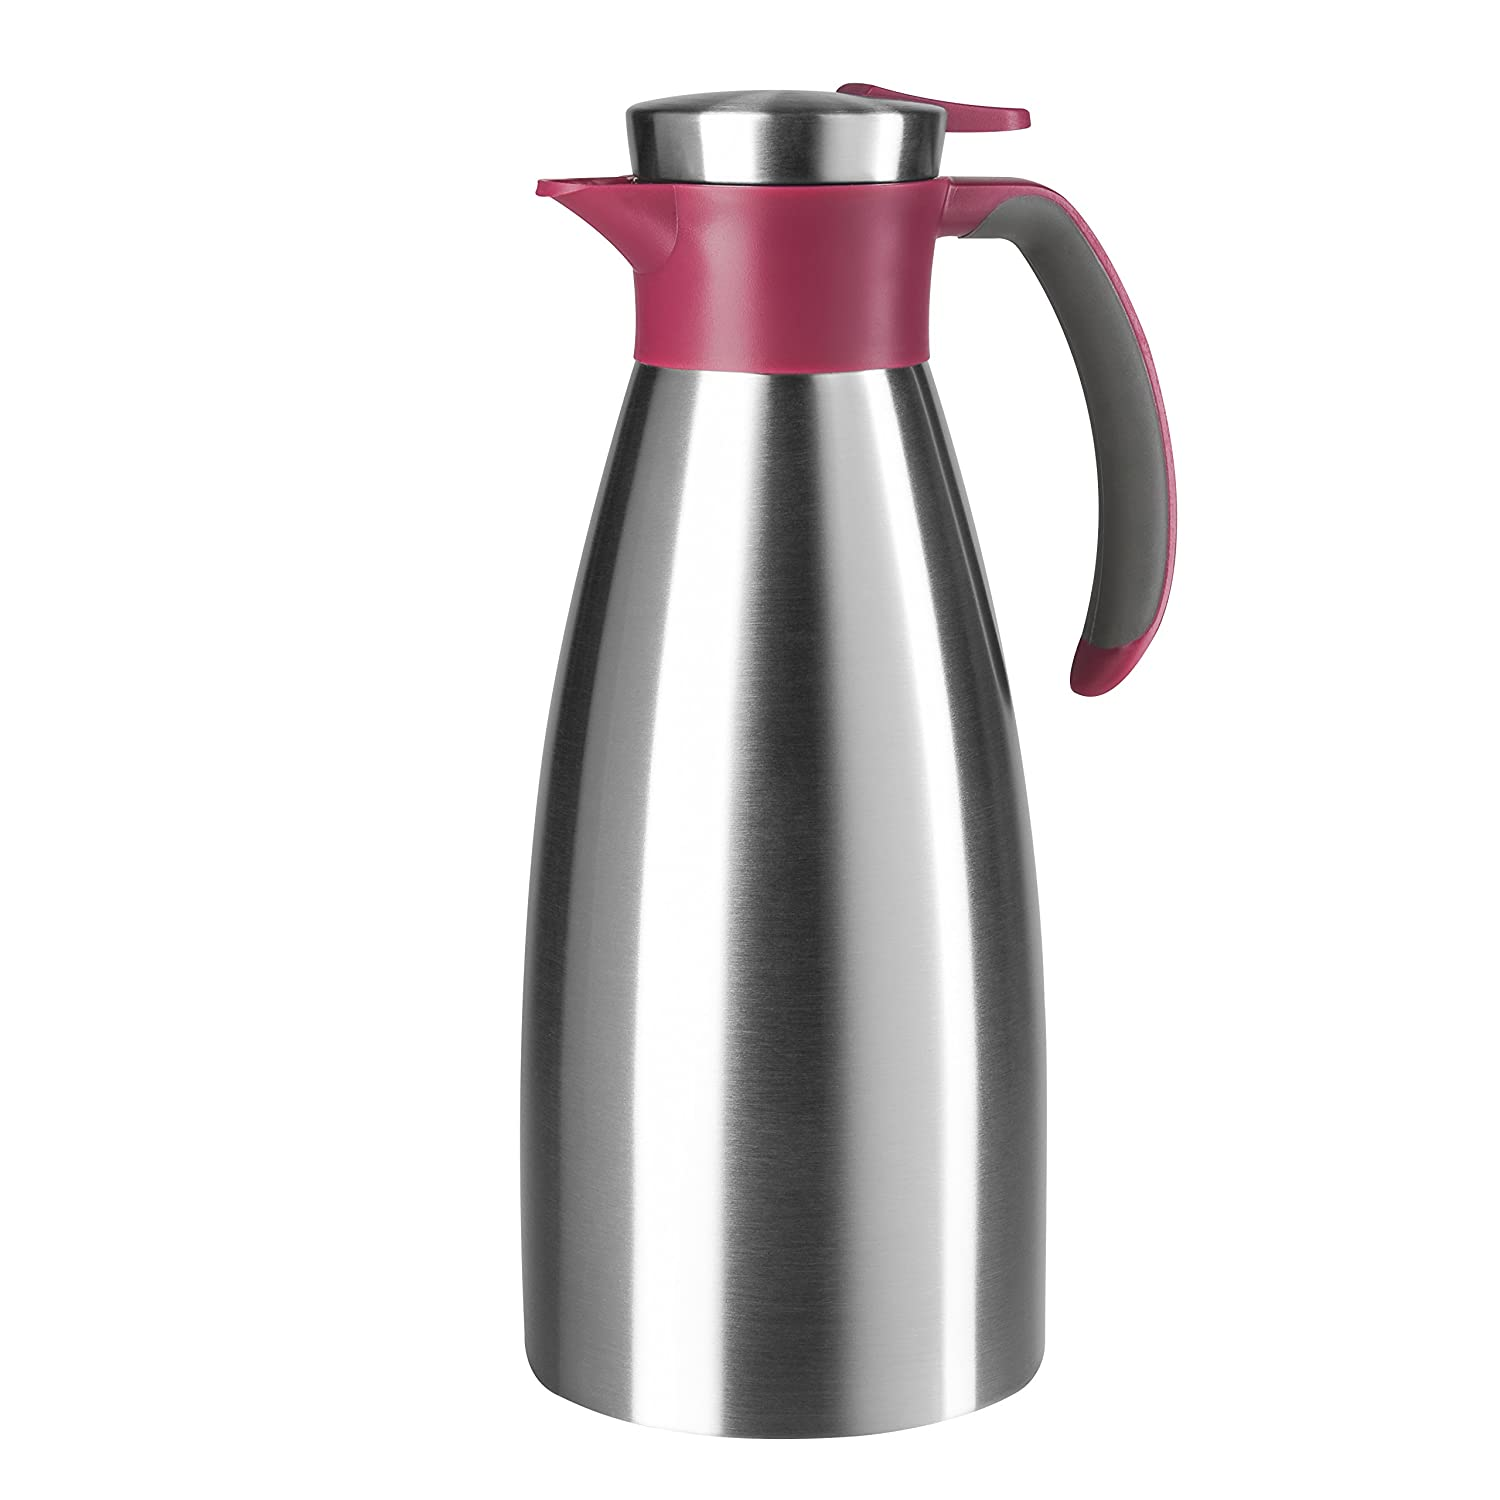 Emsa 514501 Soft Grip Quick-Tip vacuum jug 1.5 litres, blackberry E514501